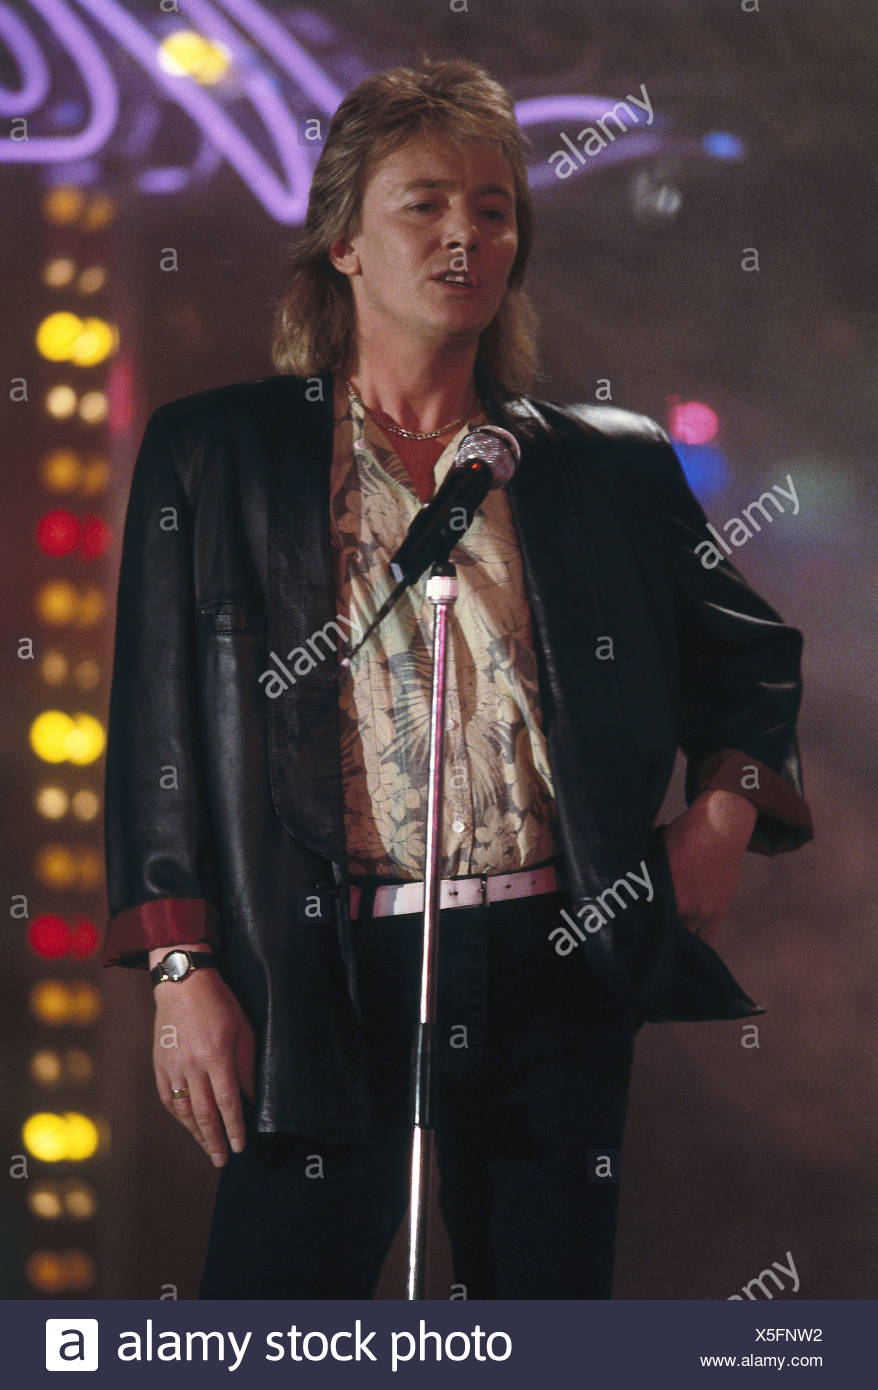 Norman, Chris, * 25.10.1950, British singer, half length, on stage, 1990s, Additional-Rights-Clearances-NA - Stock Image